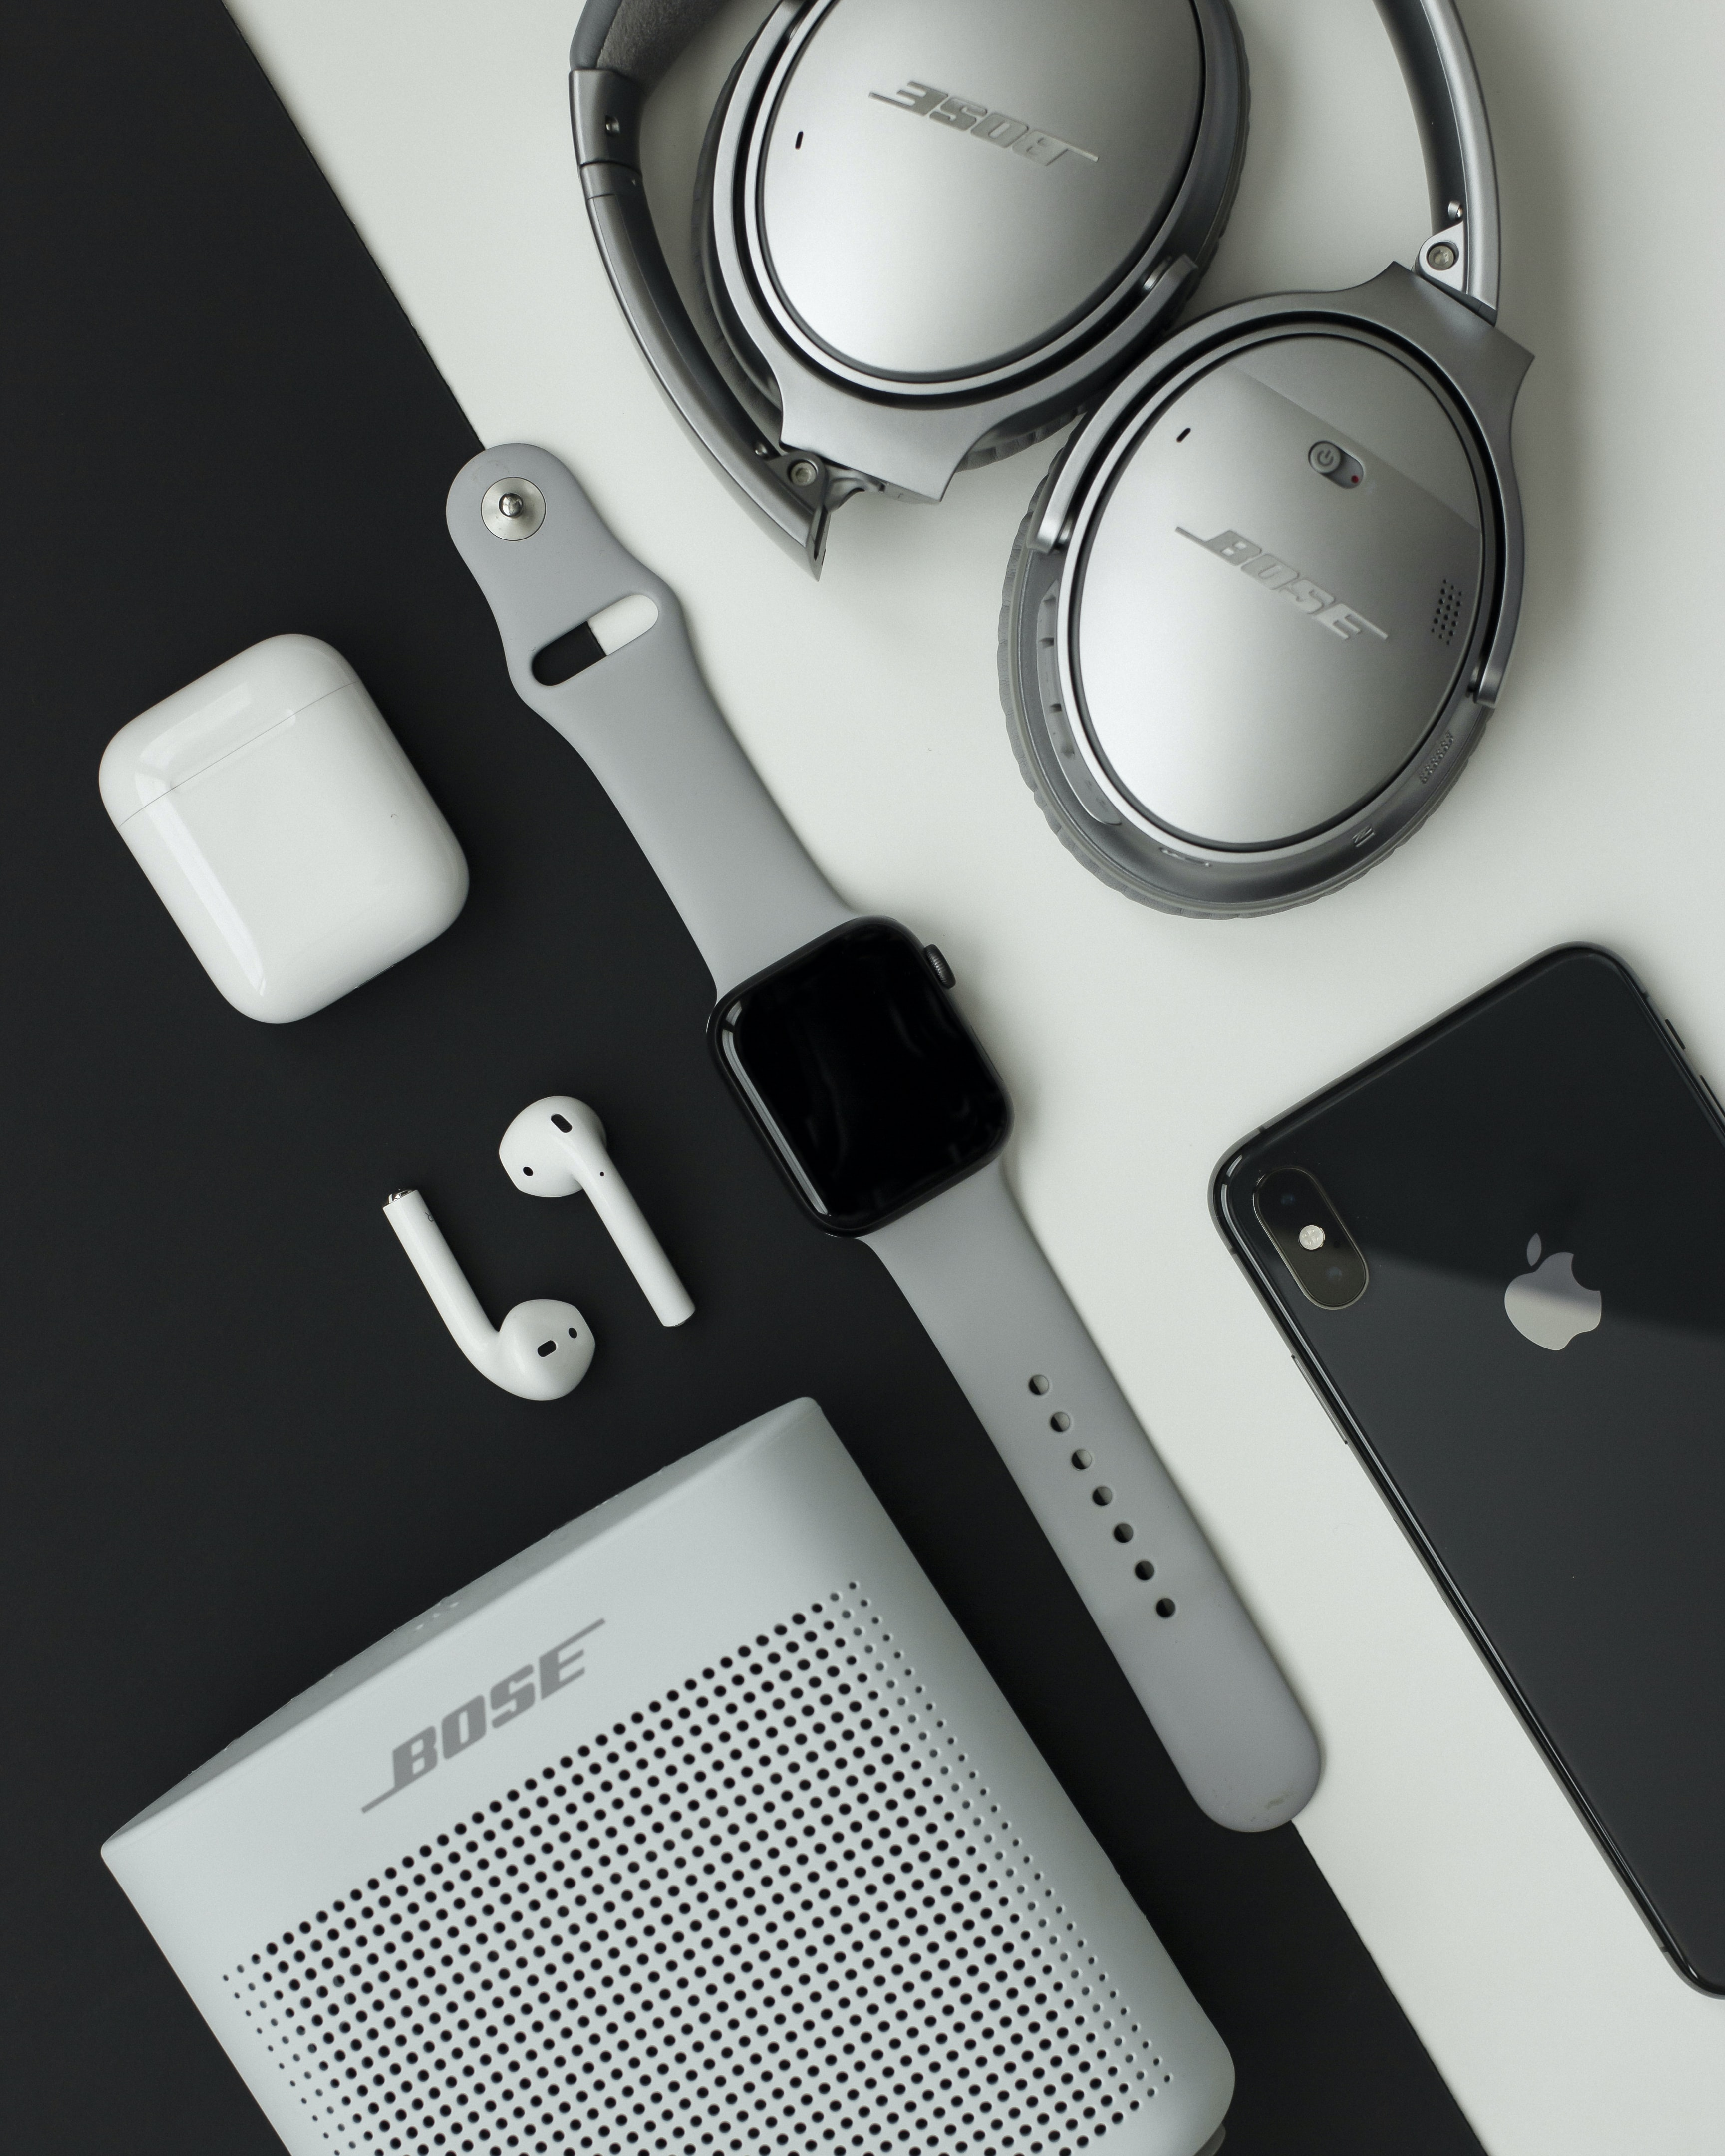 gray Bose headphones, Apple Watch and iPhone on white and black surface